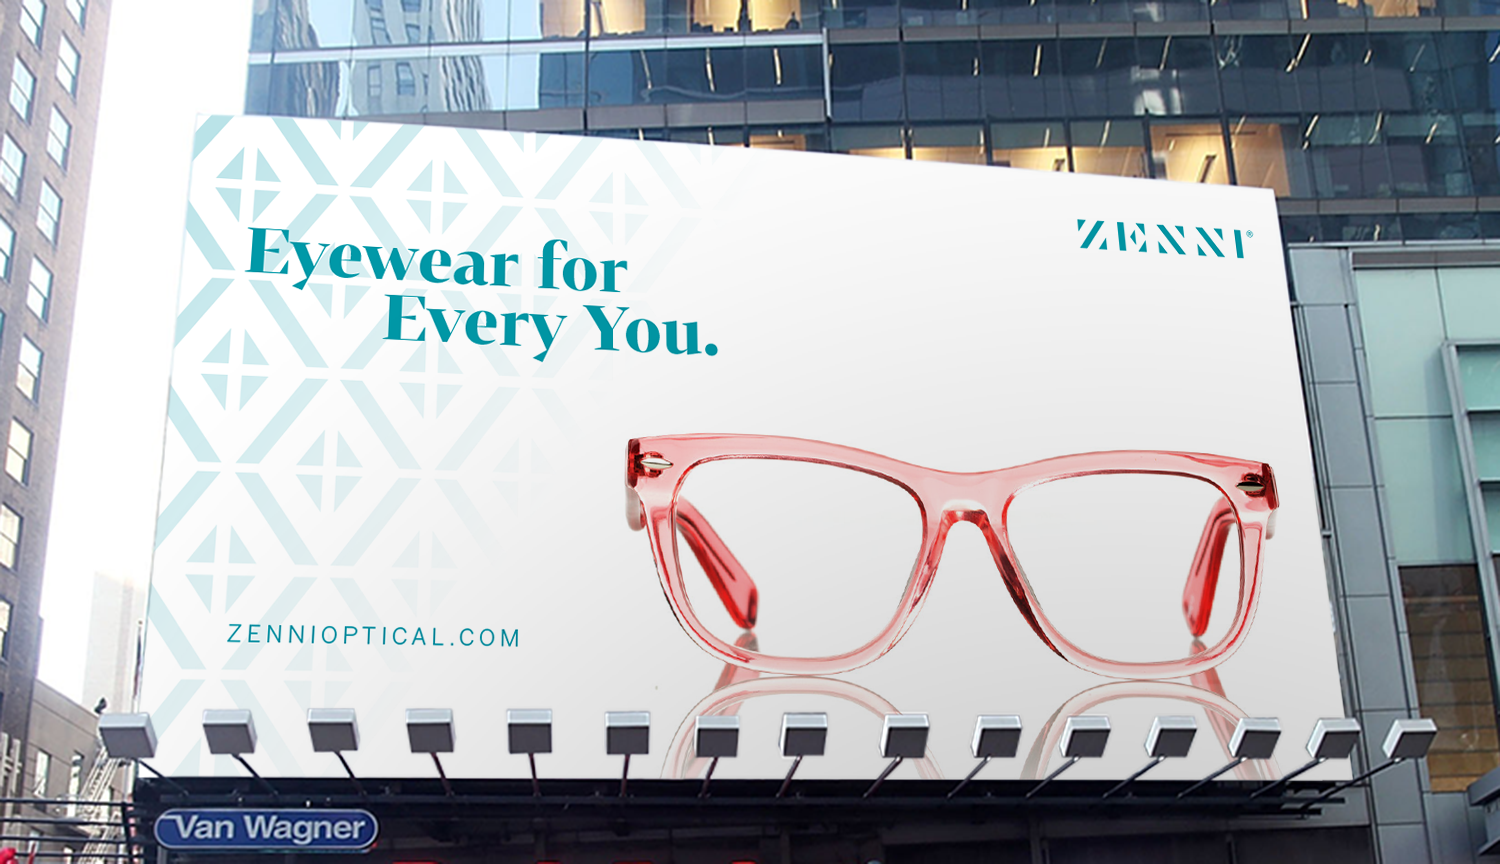 8e49d3defd The design of the Zenni wordmark and logo reflected this switch to a richer  brand experience. The look is fashion-driven and reinforces a strong sense  of ...